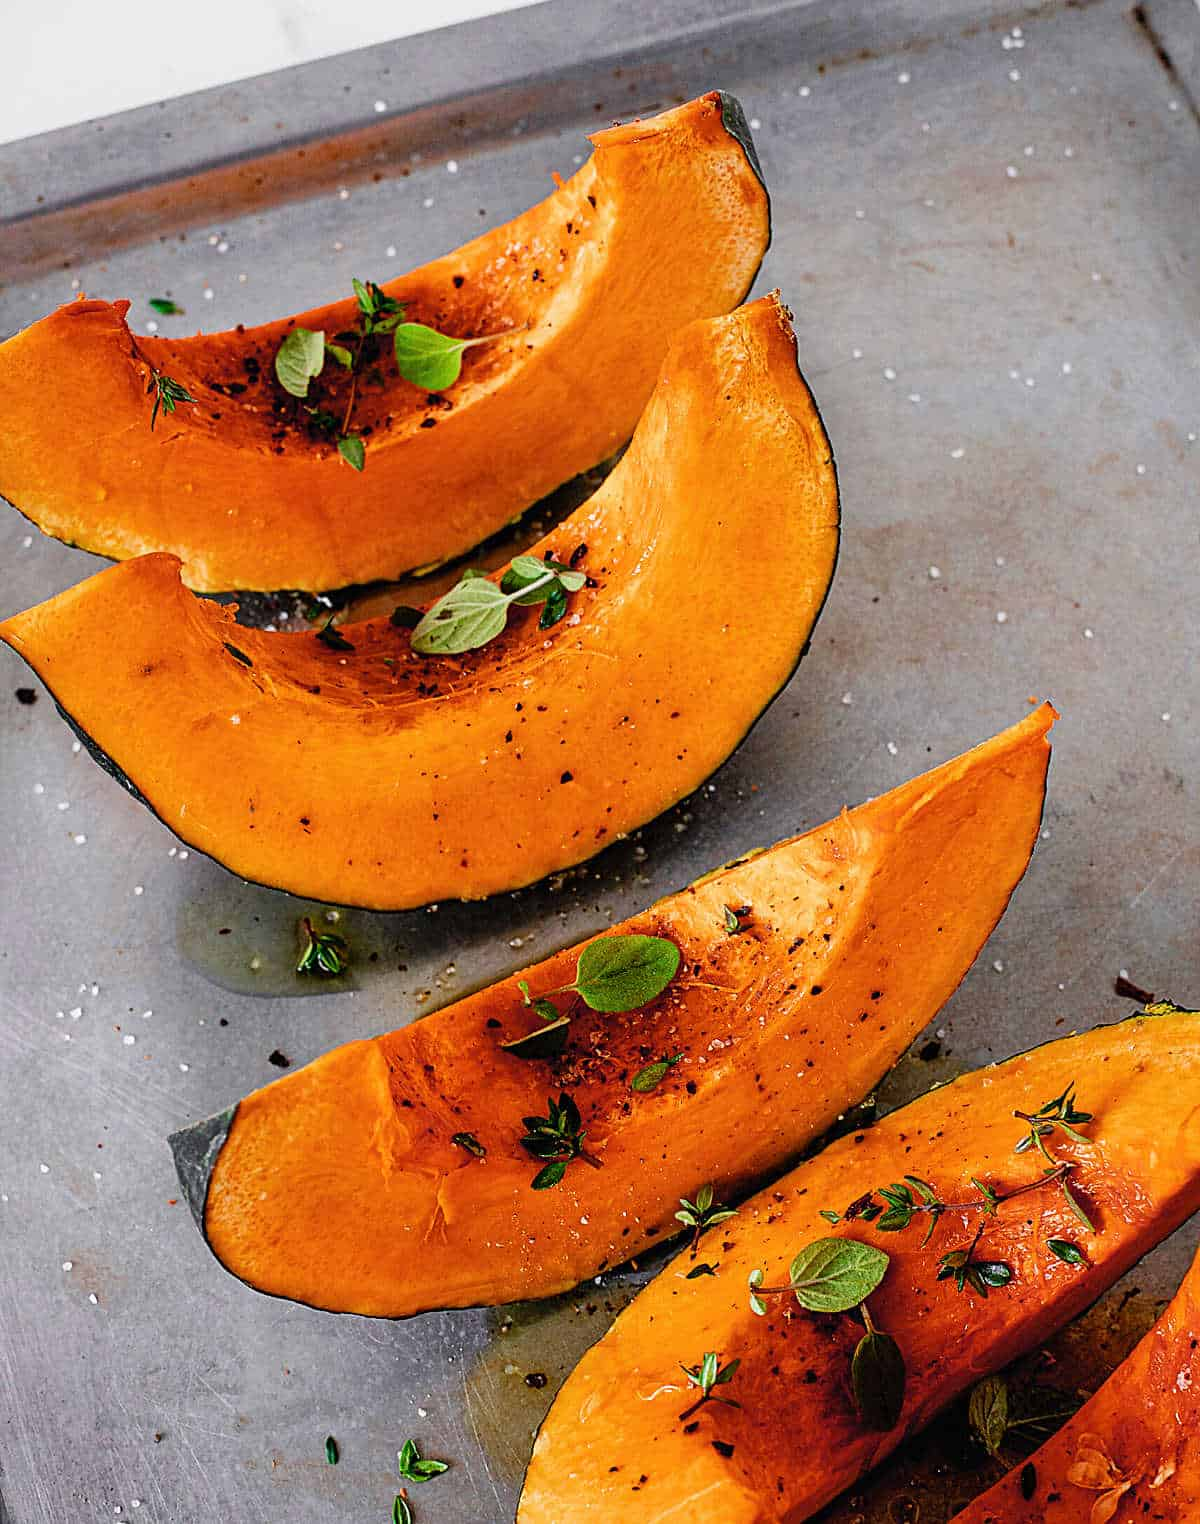 Raw pumpkin wedges with spices and herbs on metal baking sheet